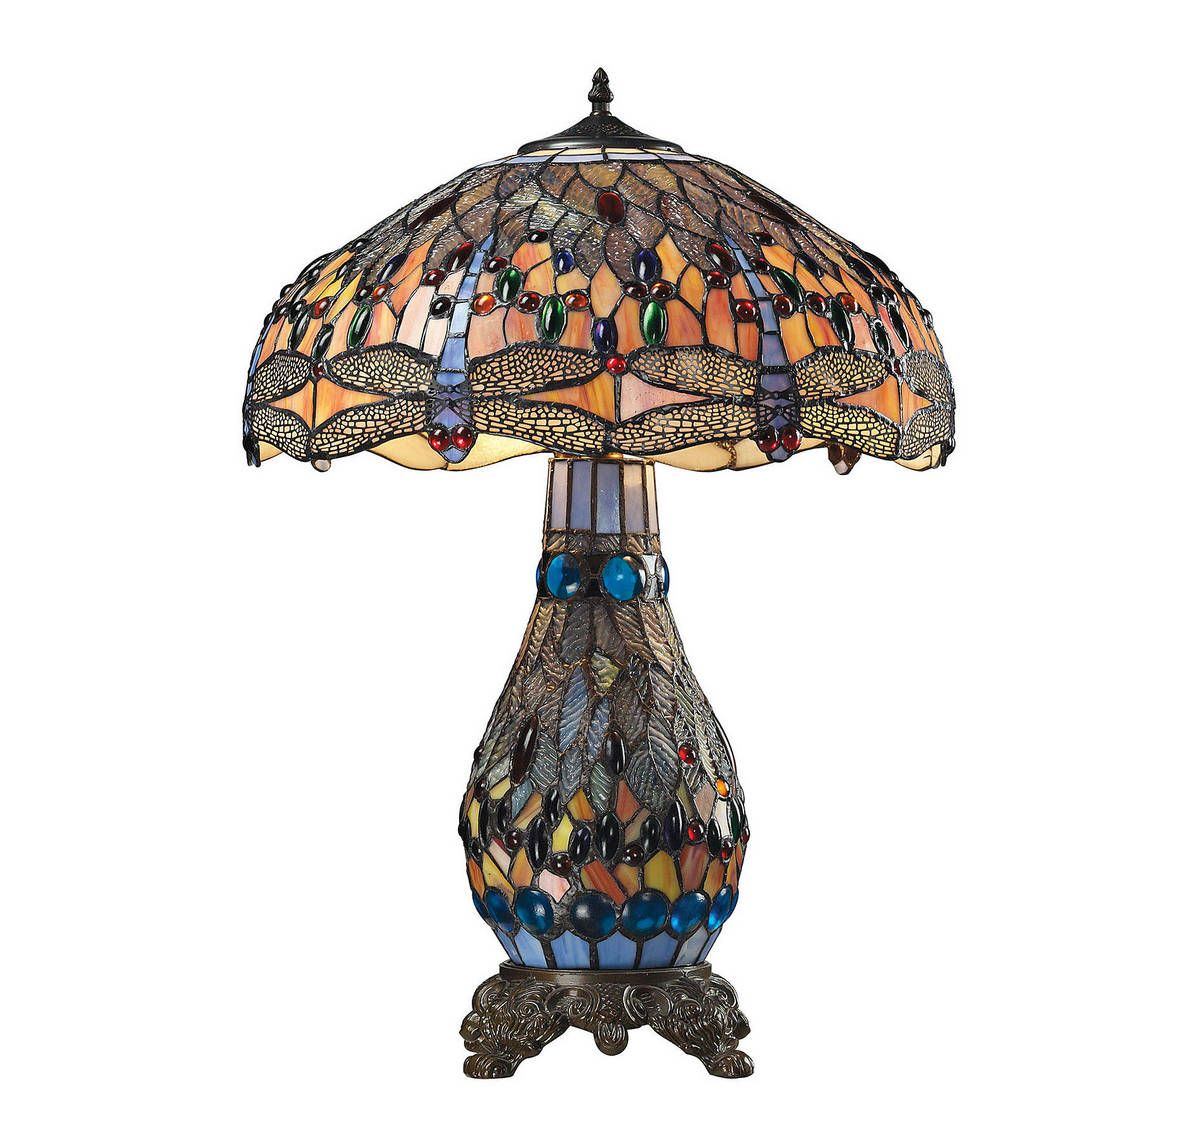 Dimond Dragonfly 26 Tiffany Glass Table Lamp In Tiffany Bronze